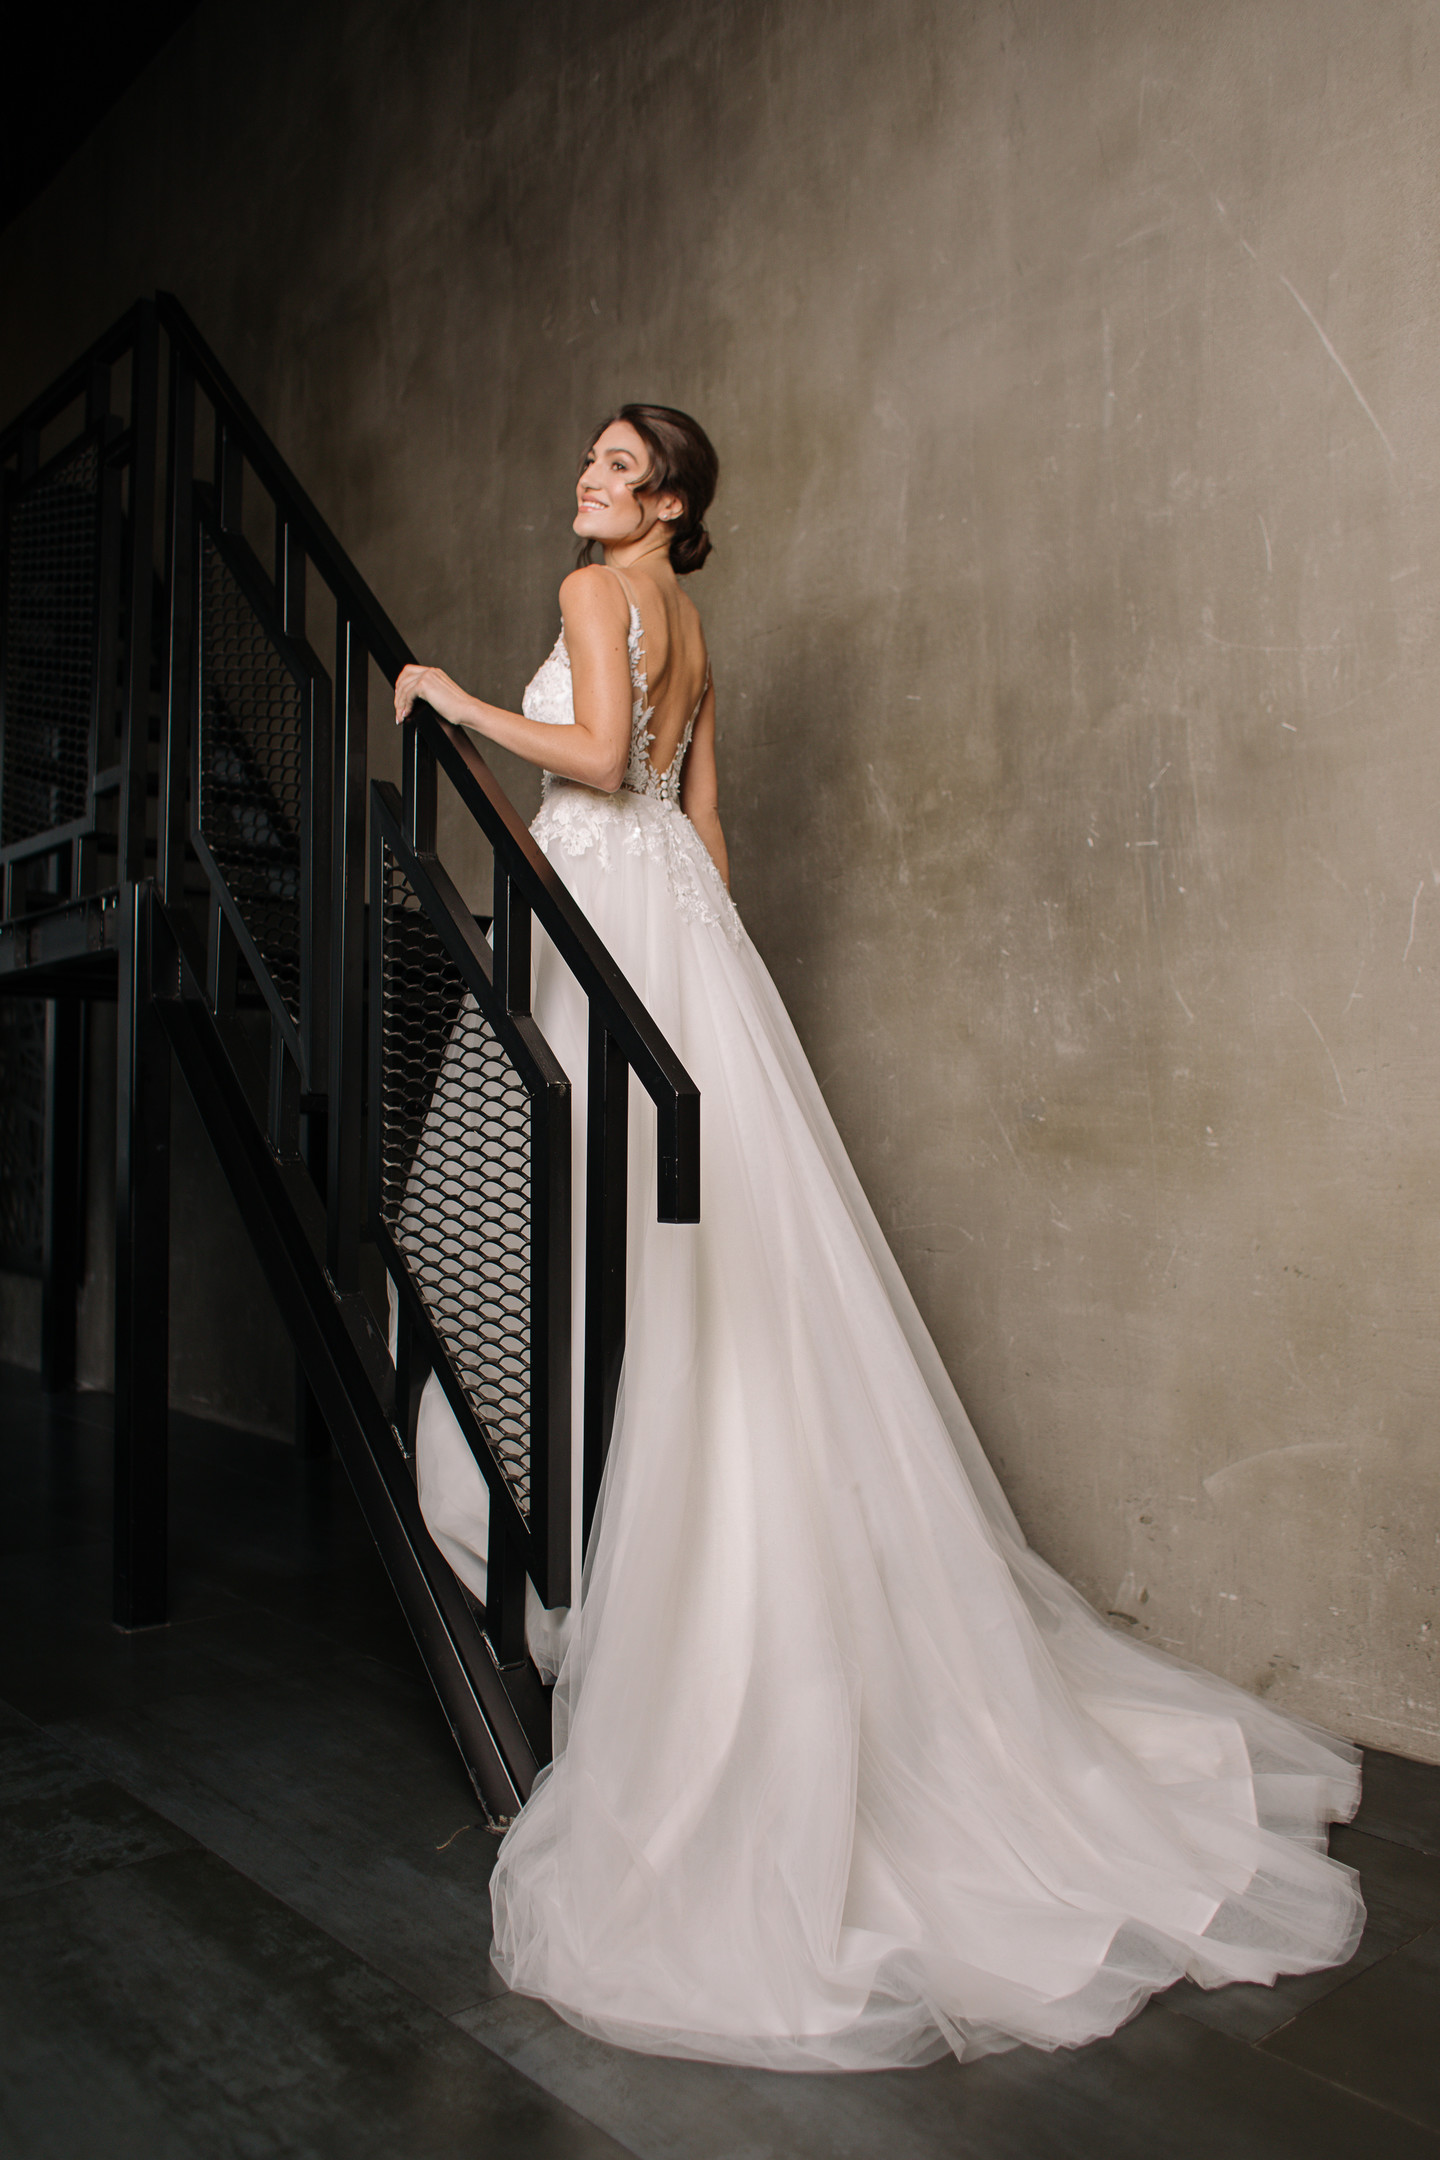 Adele gown, 2019, couture, gown, dress, bridal, off-white, lace, A-line, train, tulle, discount, sale